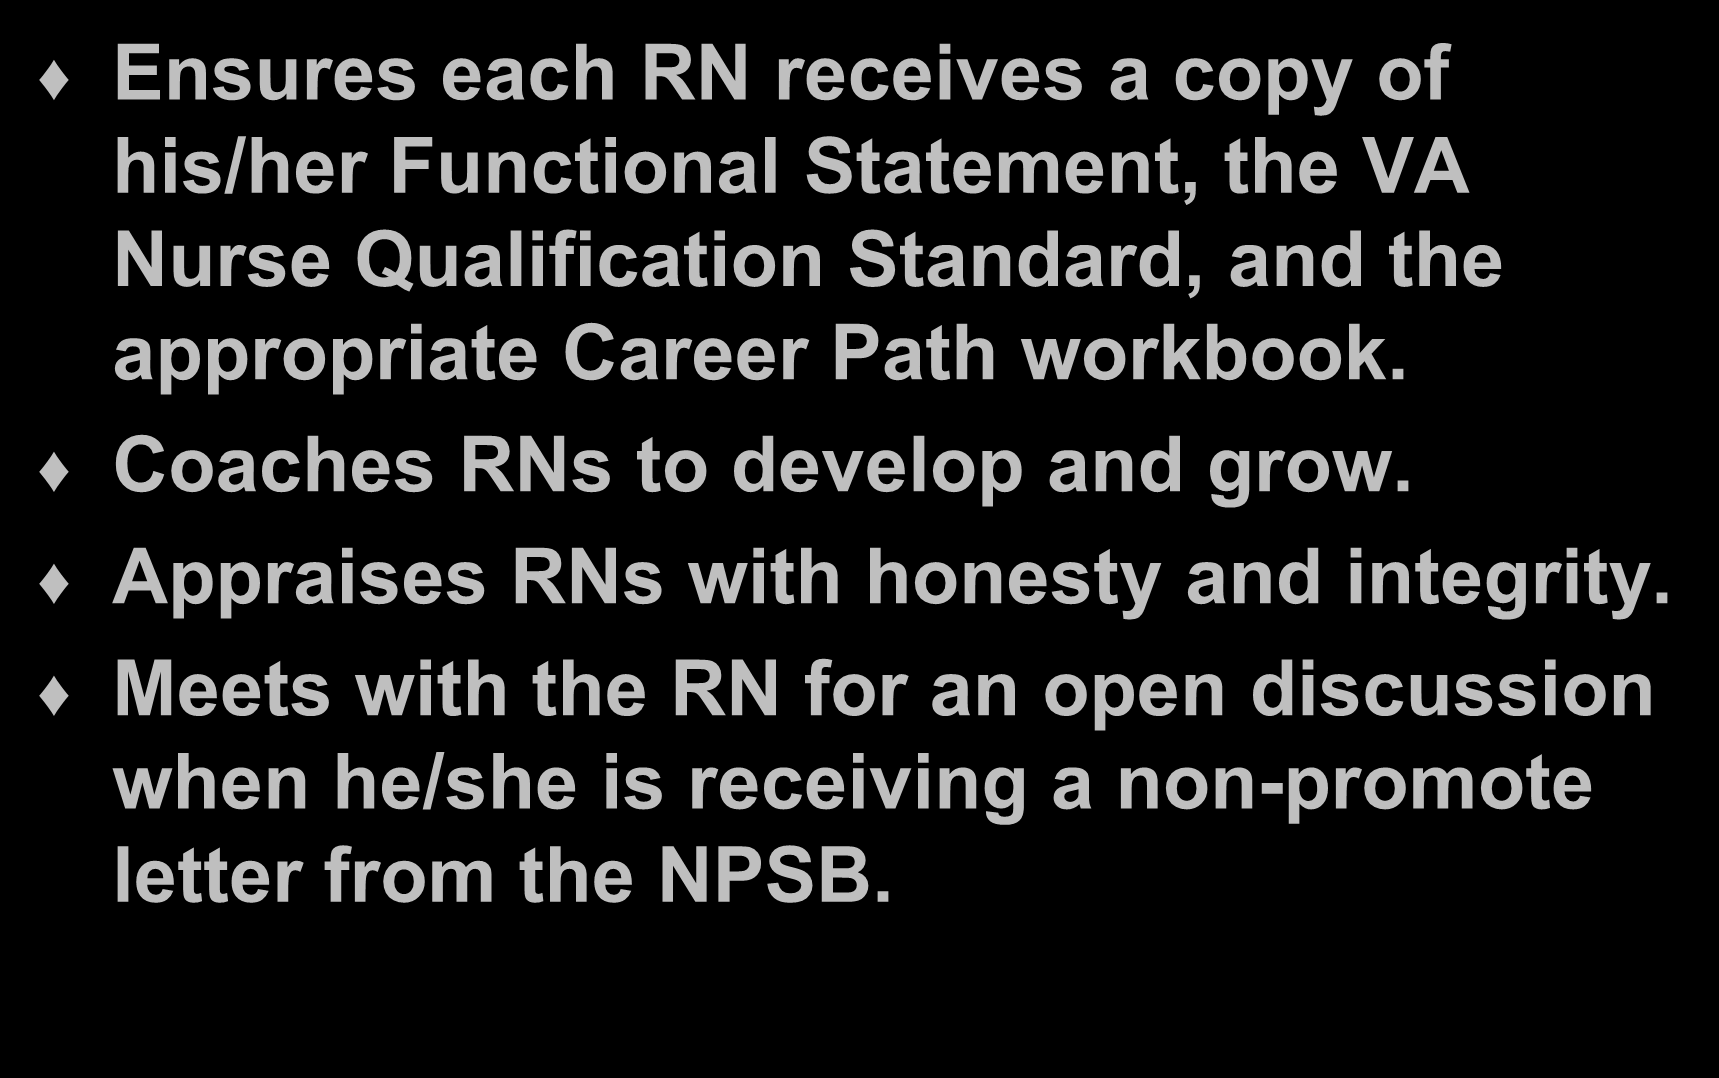 Supervisor's Responsibilities Ensures each RN receives a copy of his/her Functional Statement, the VA Nurse Qualification Standard, and the appropriate Career Path workbook.